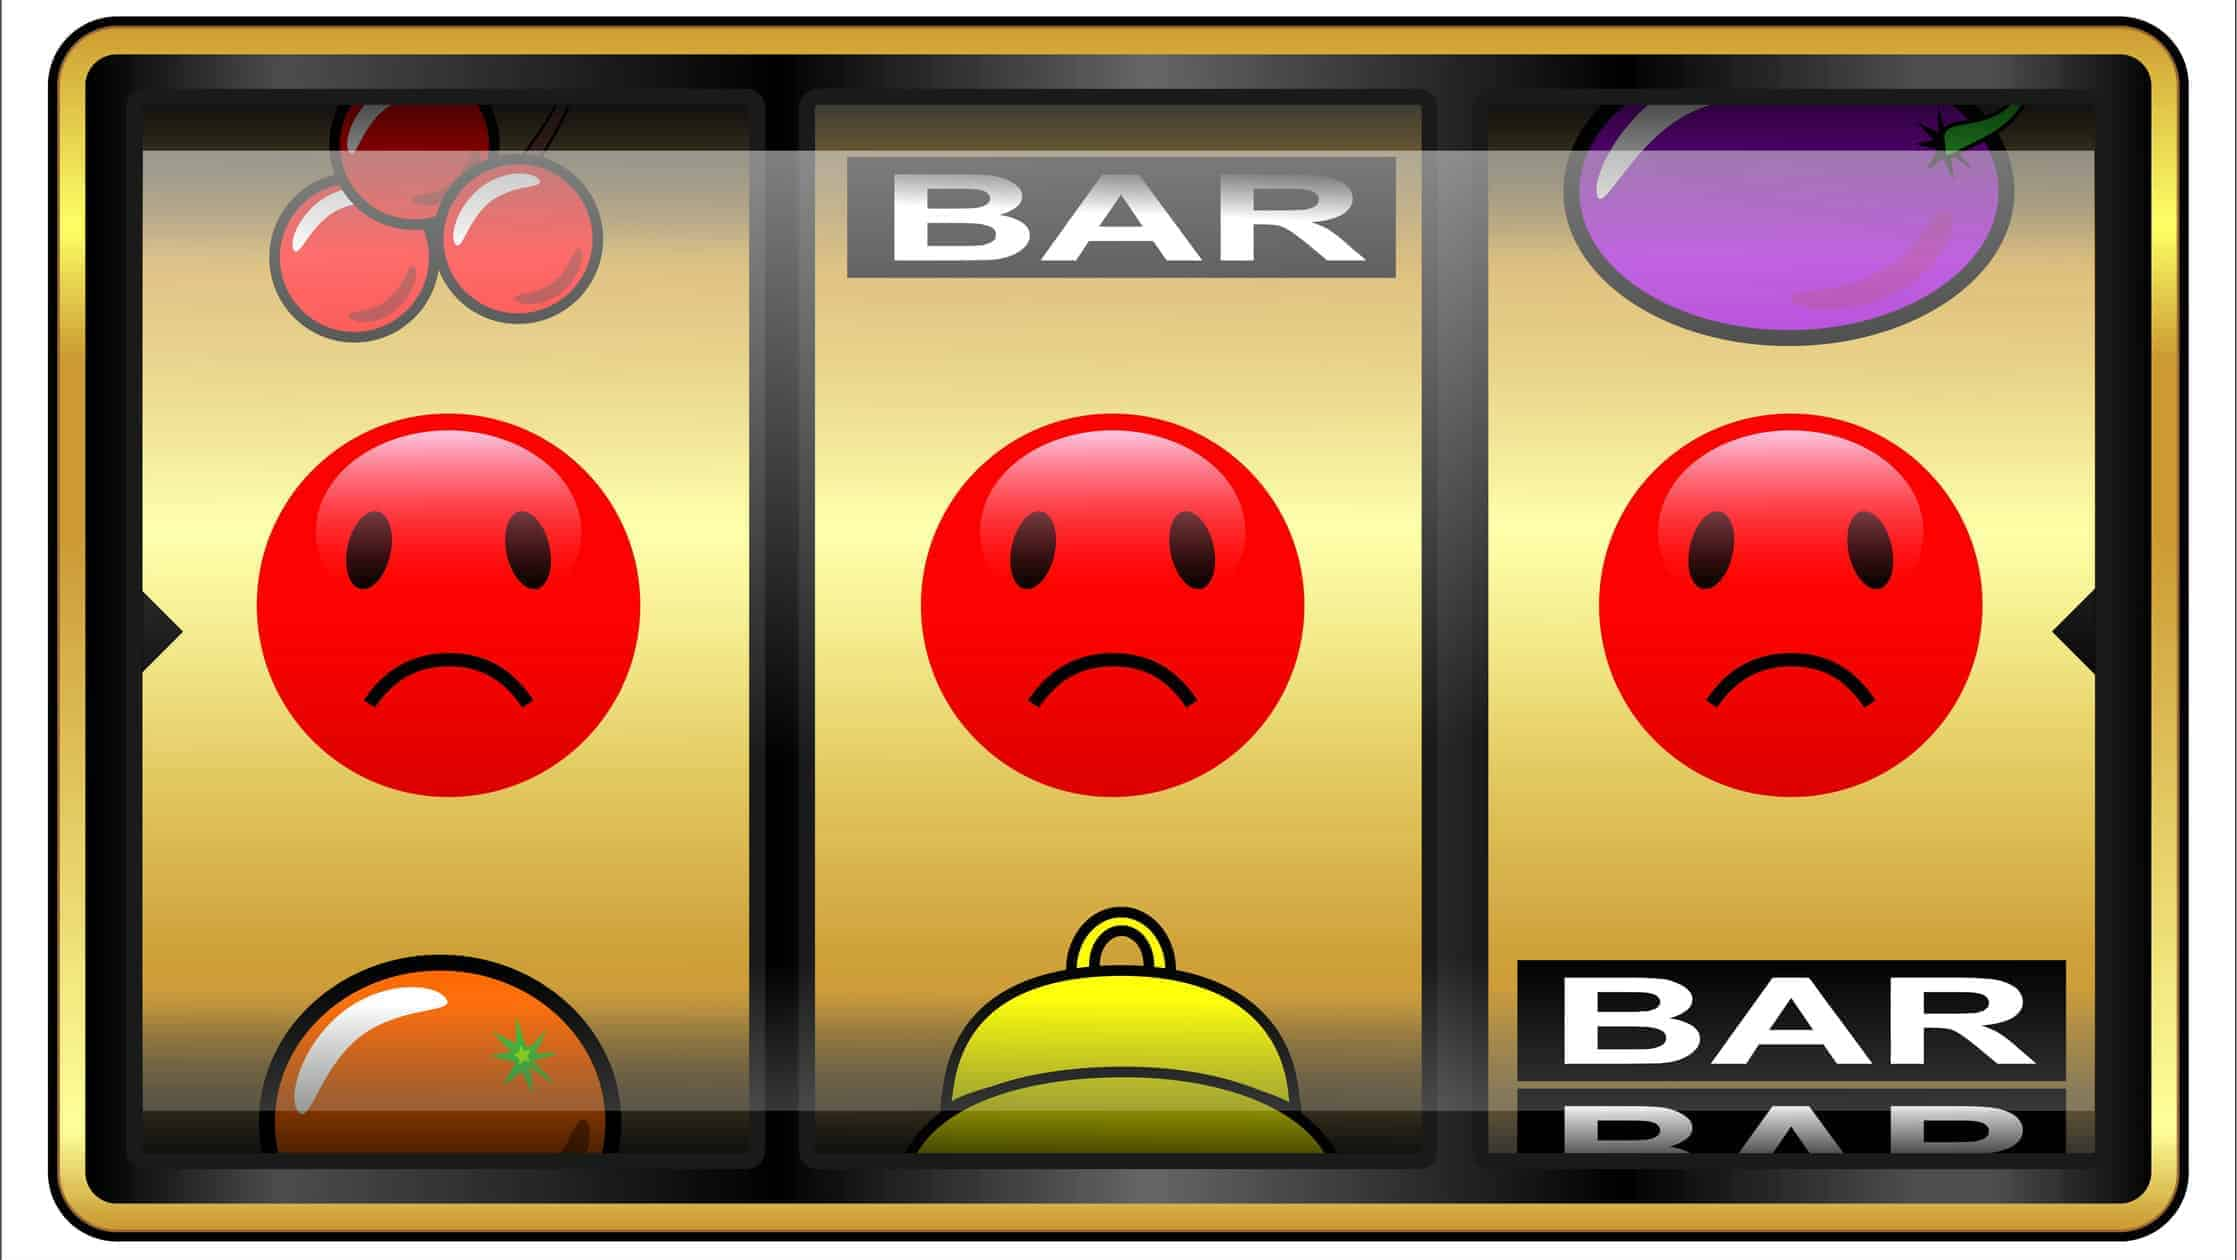 share price lows represented by sad faces on gaming machine